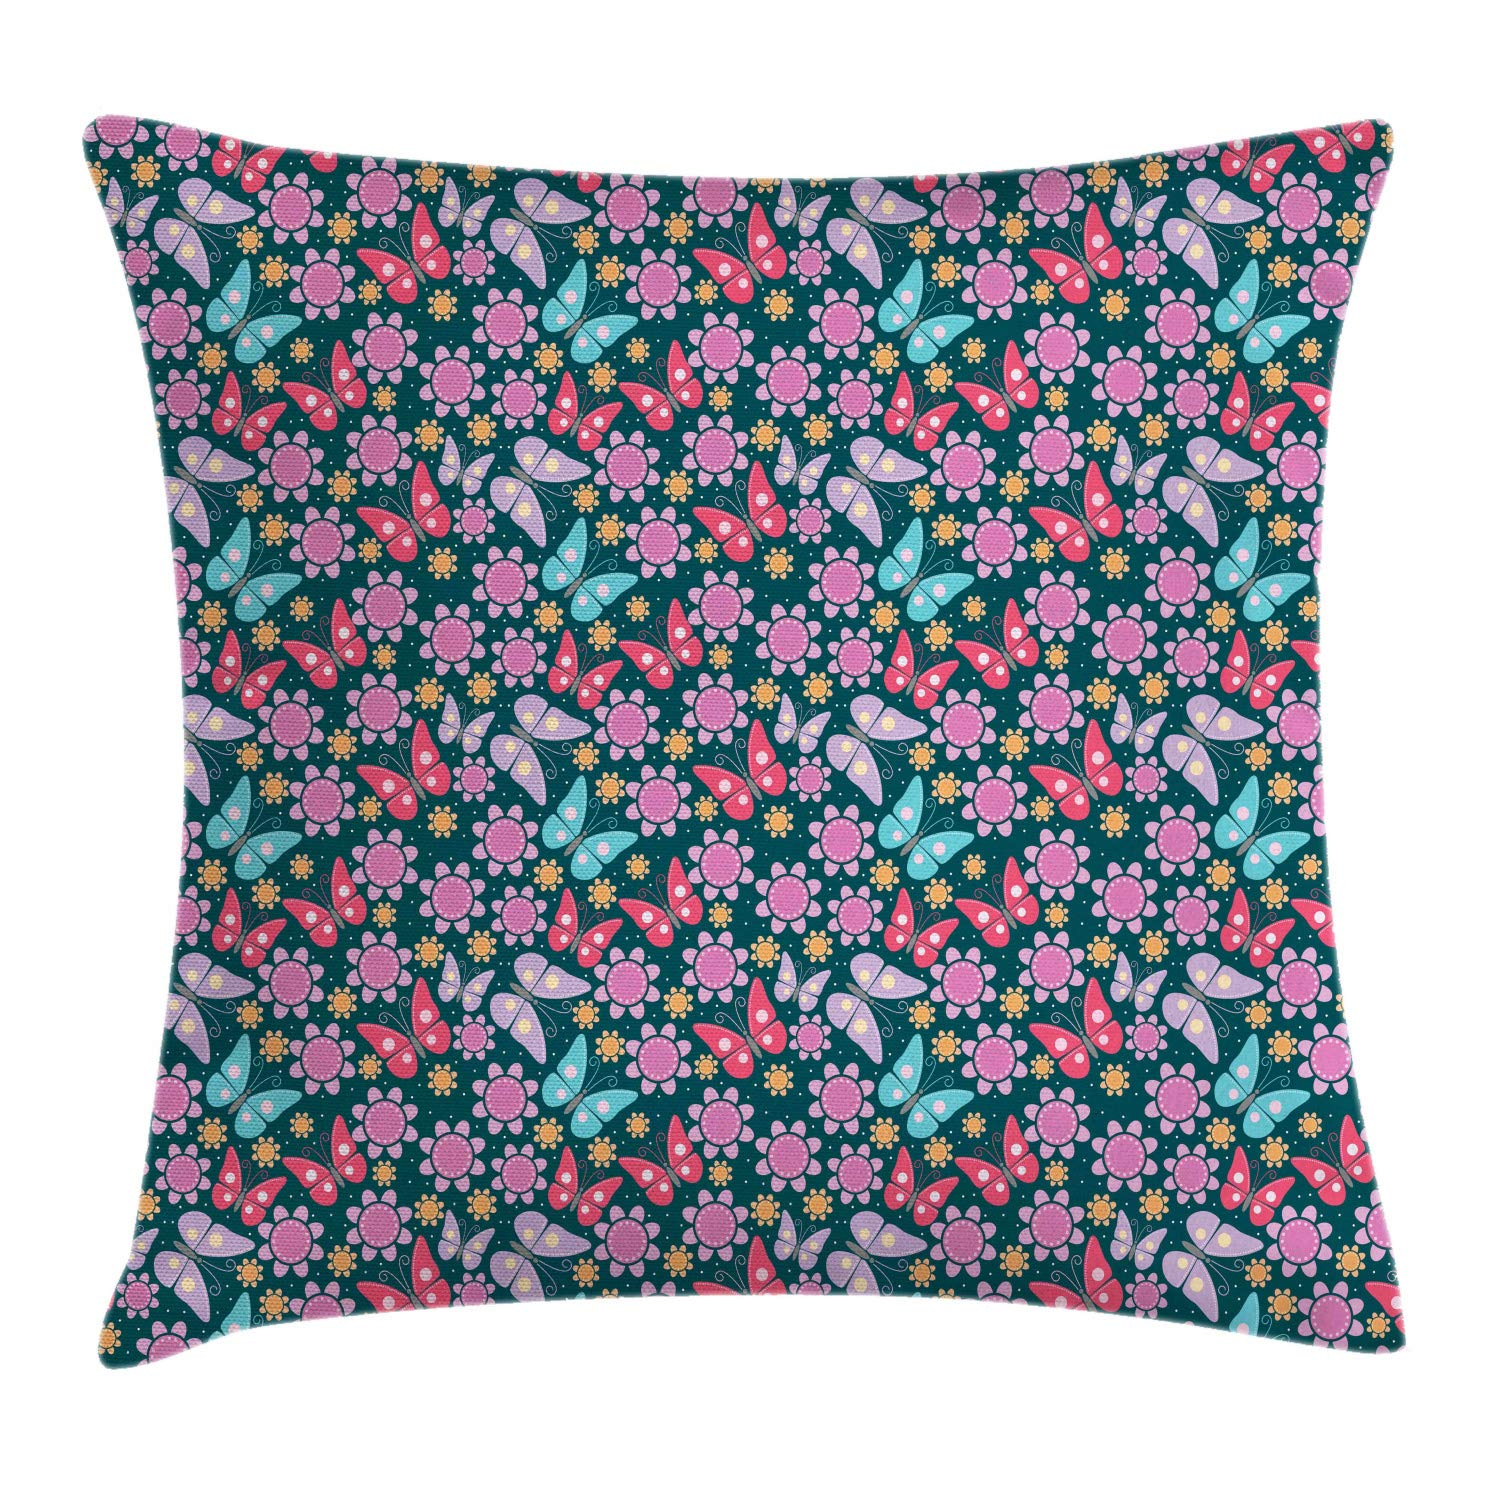 Lunarable Nursery Throw Pillow Cushion Cover, Happy Illustration with Flowers and Butterflies Colorful Spring Breeze Cartoon, Decorative Square Accent Pillow Case, 26'' X 26'', Multicolor by Lunarable